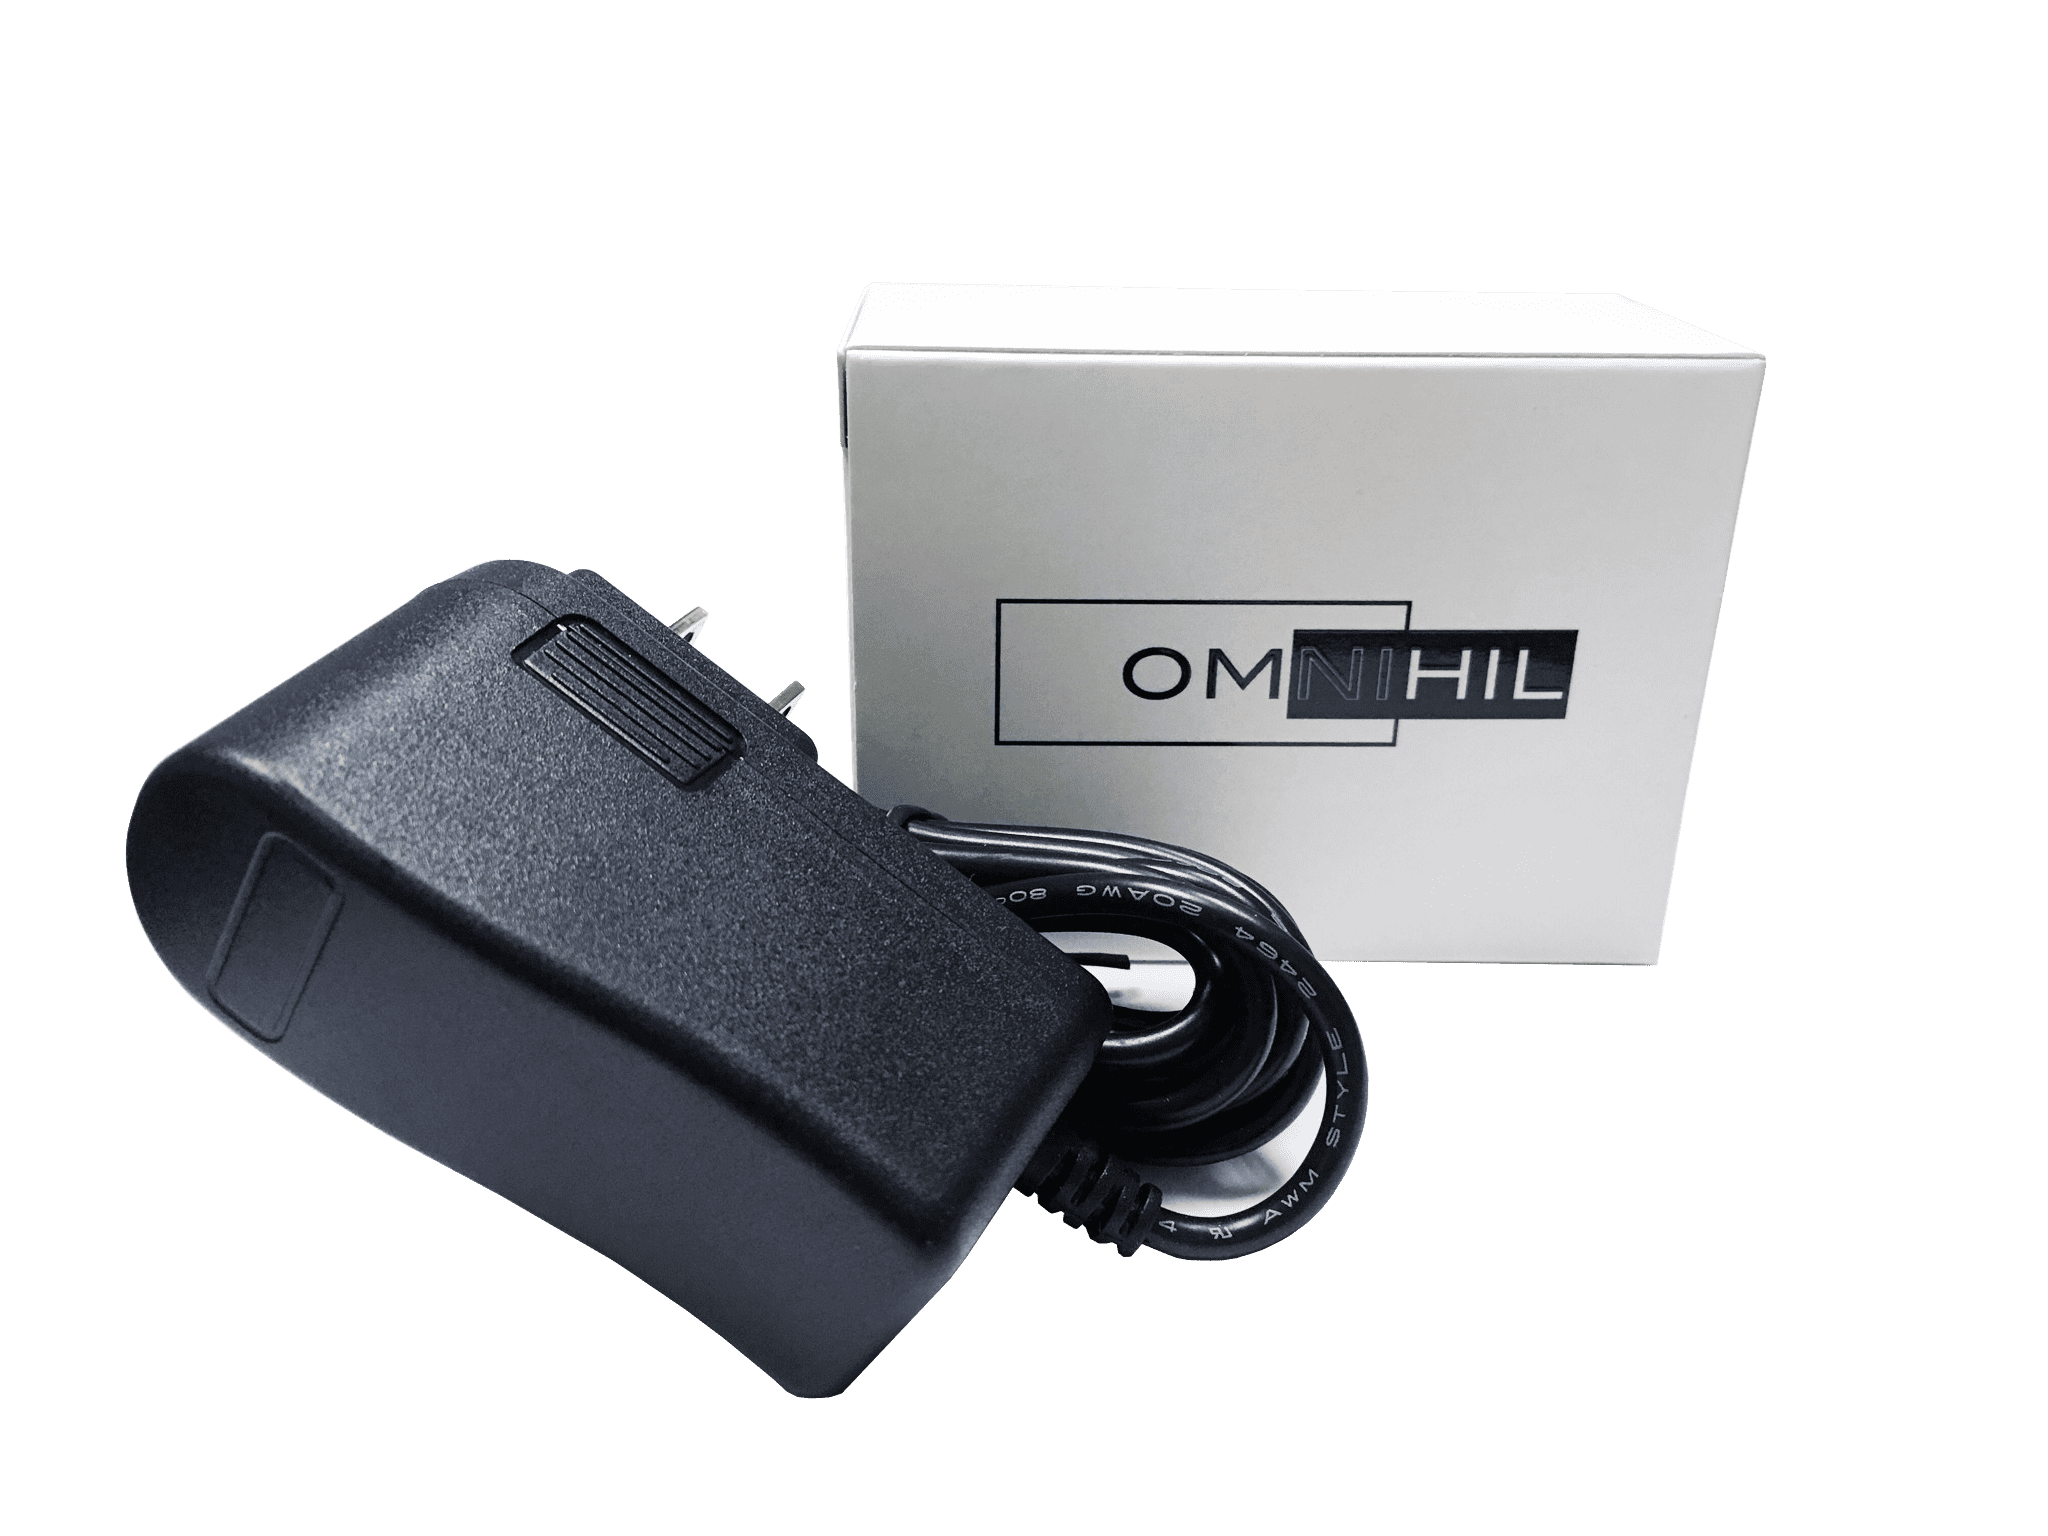 OMNIHIL AC DC Adapter Adaptor for TC Electronic Guitar Pedals: Helix Phaser, Viscous Vibe,... by OMNIHIL